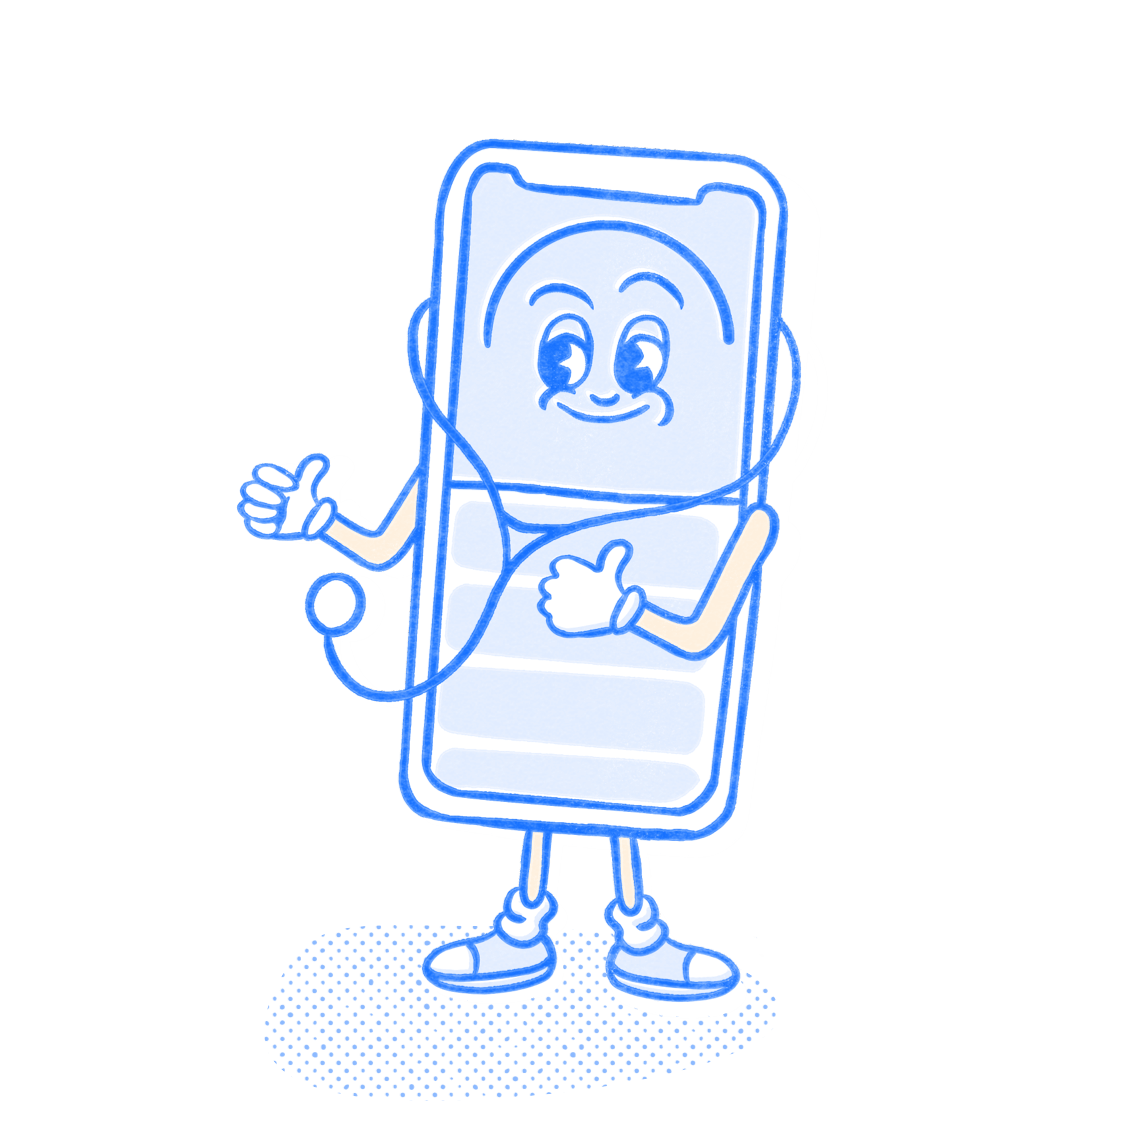 Medical Pocket Prep mascot wears stethoscope and gives thumbs up. Illustration.